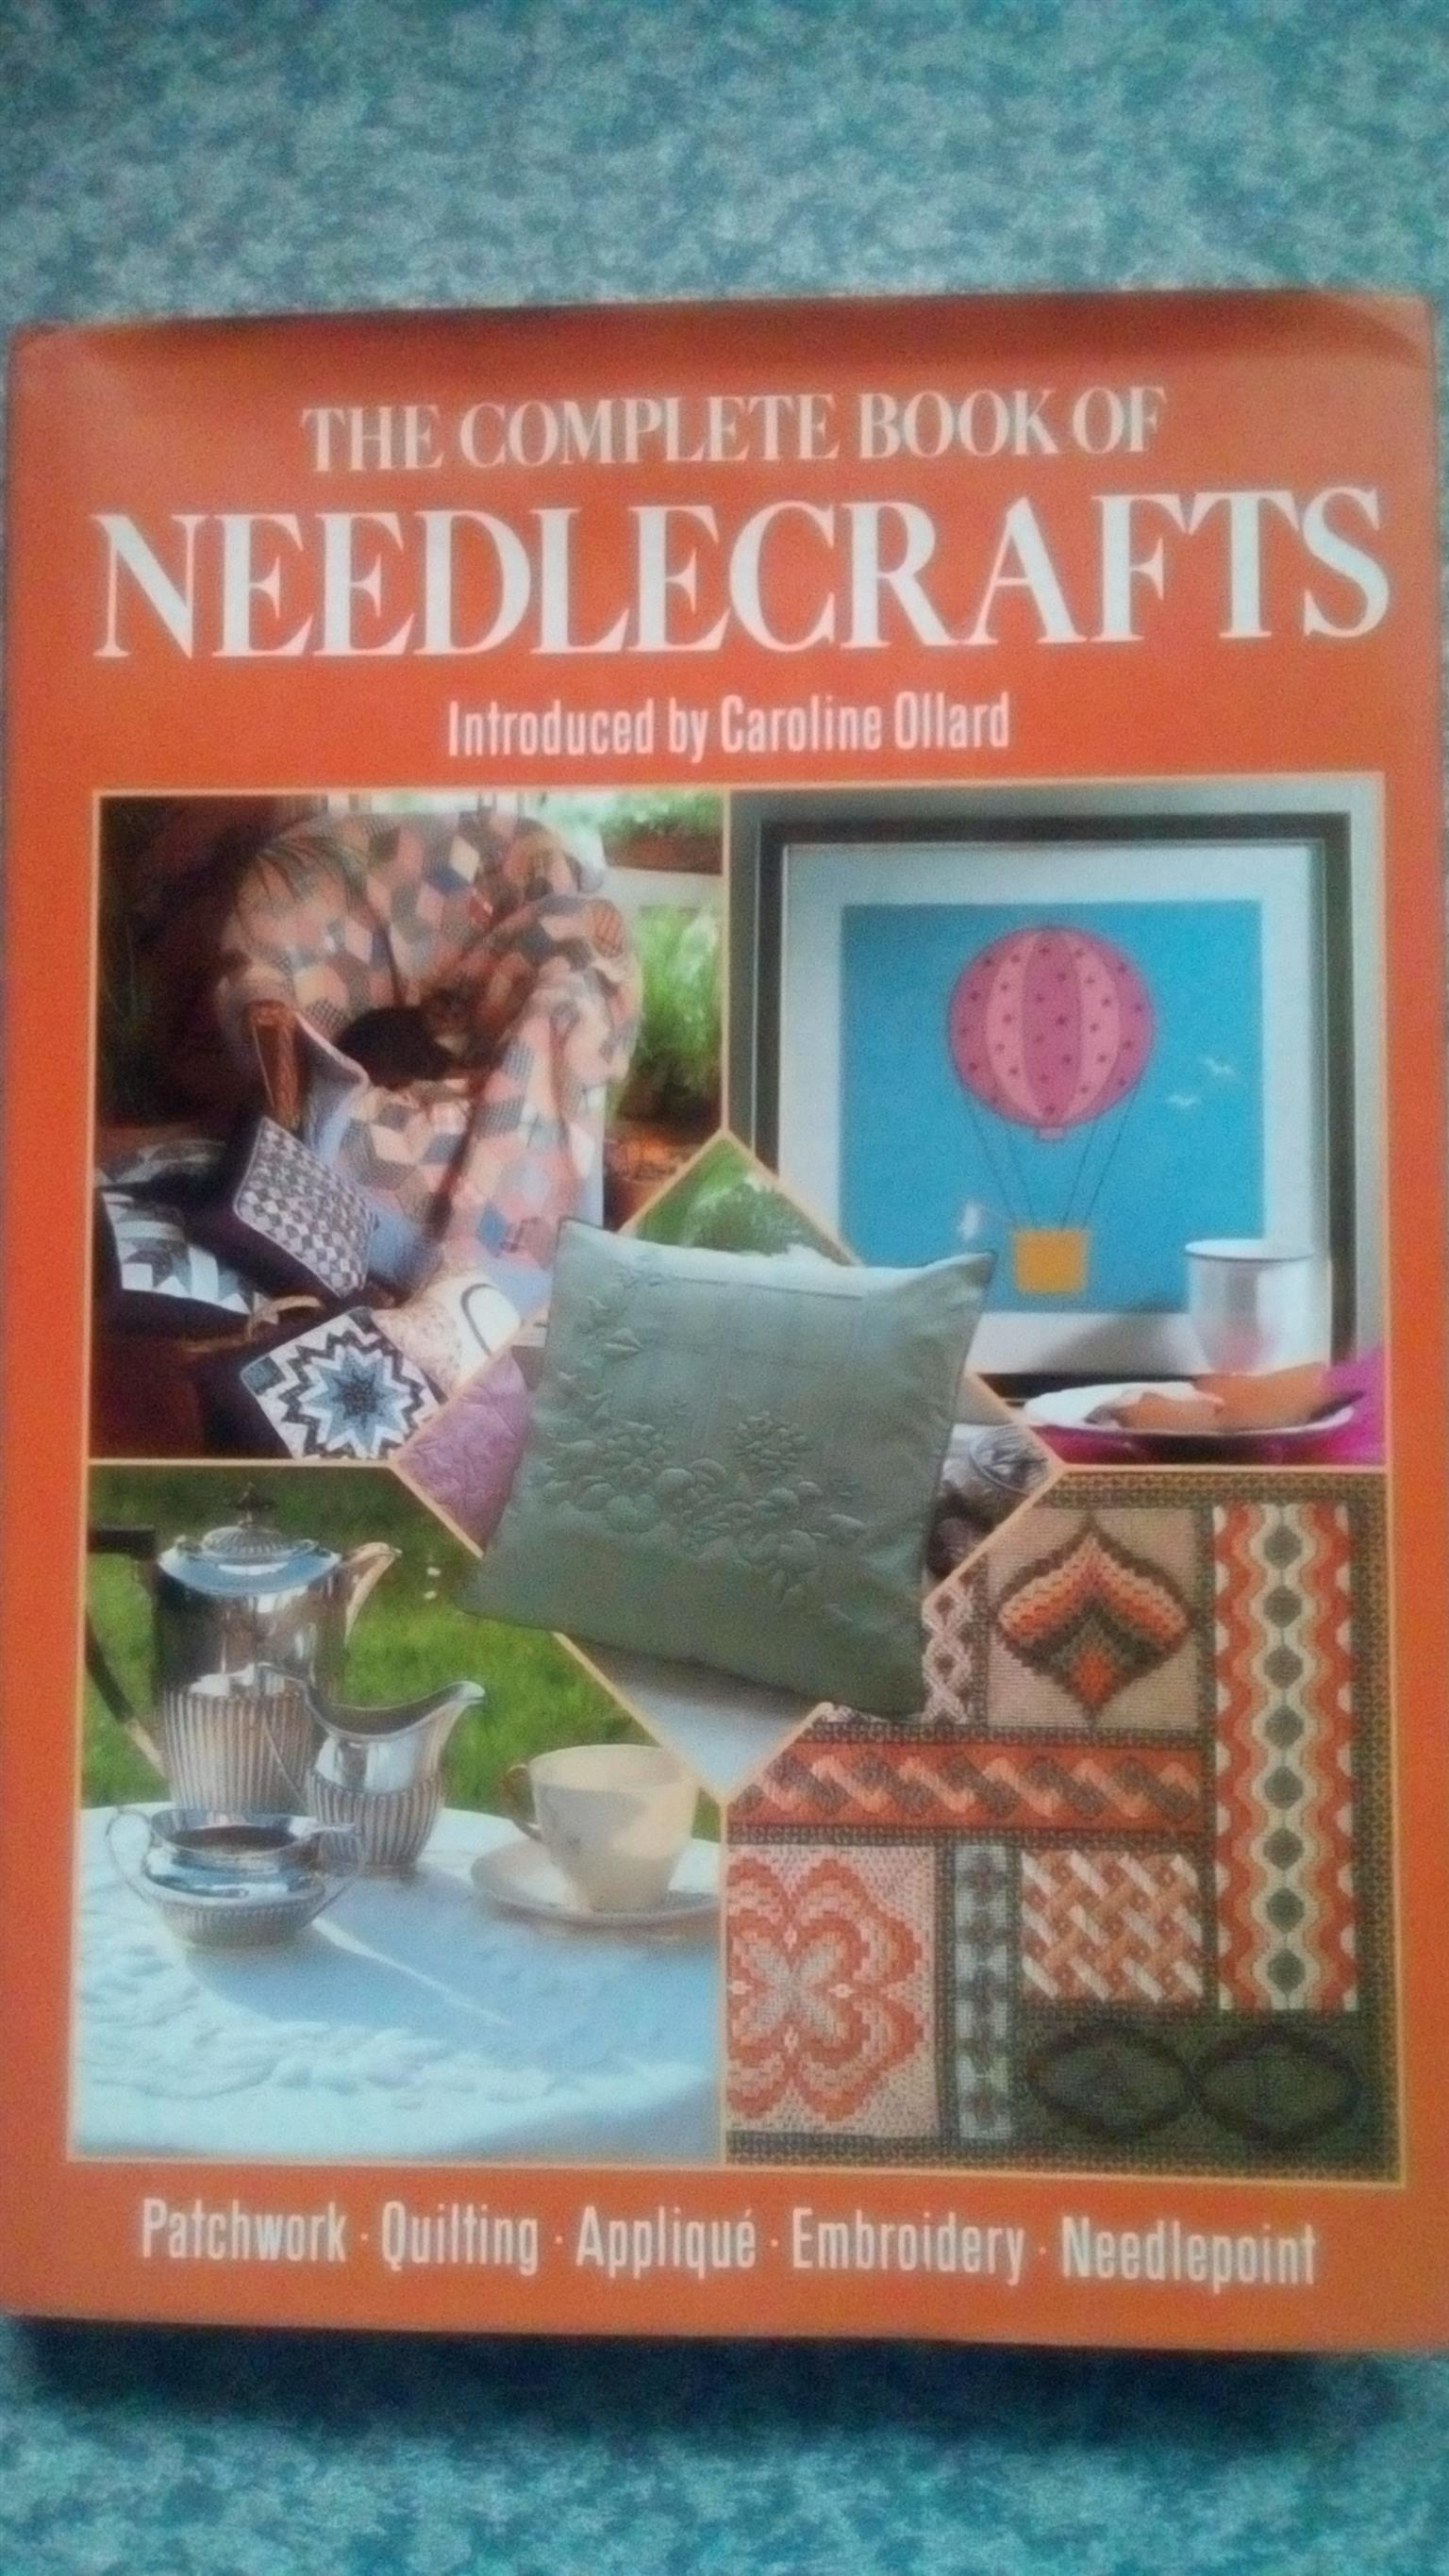 Complete Book of Needlecrafts - Caroline Ollard - Hardcover by Caroline (Intro.) Ollard